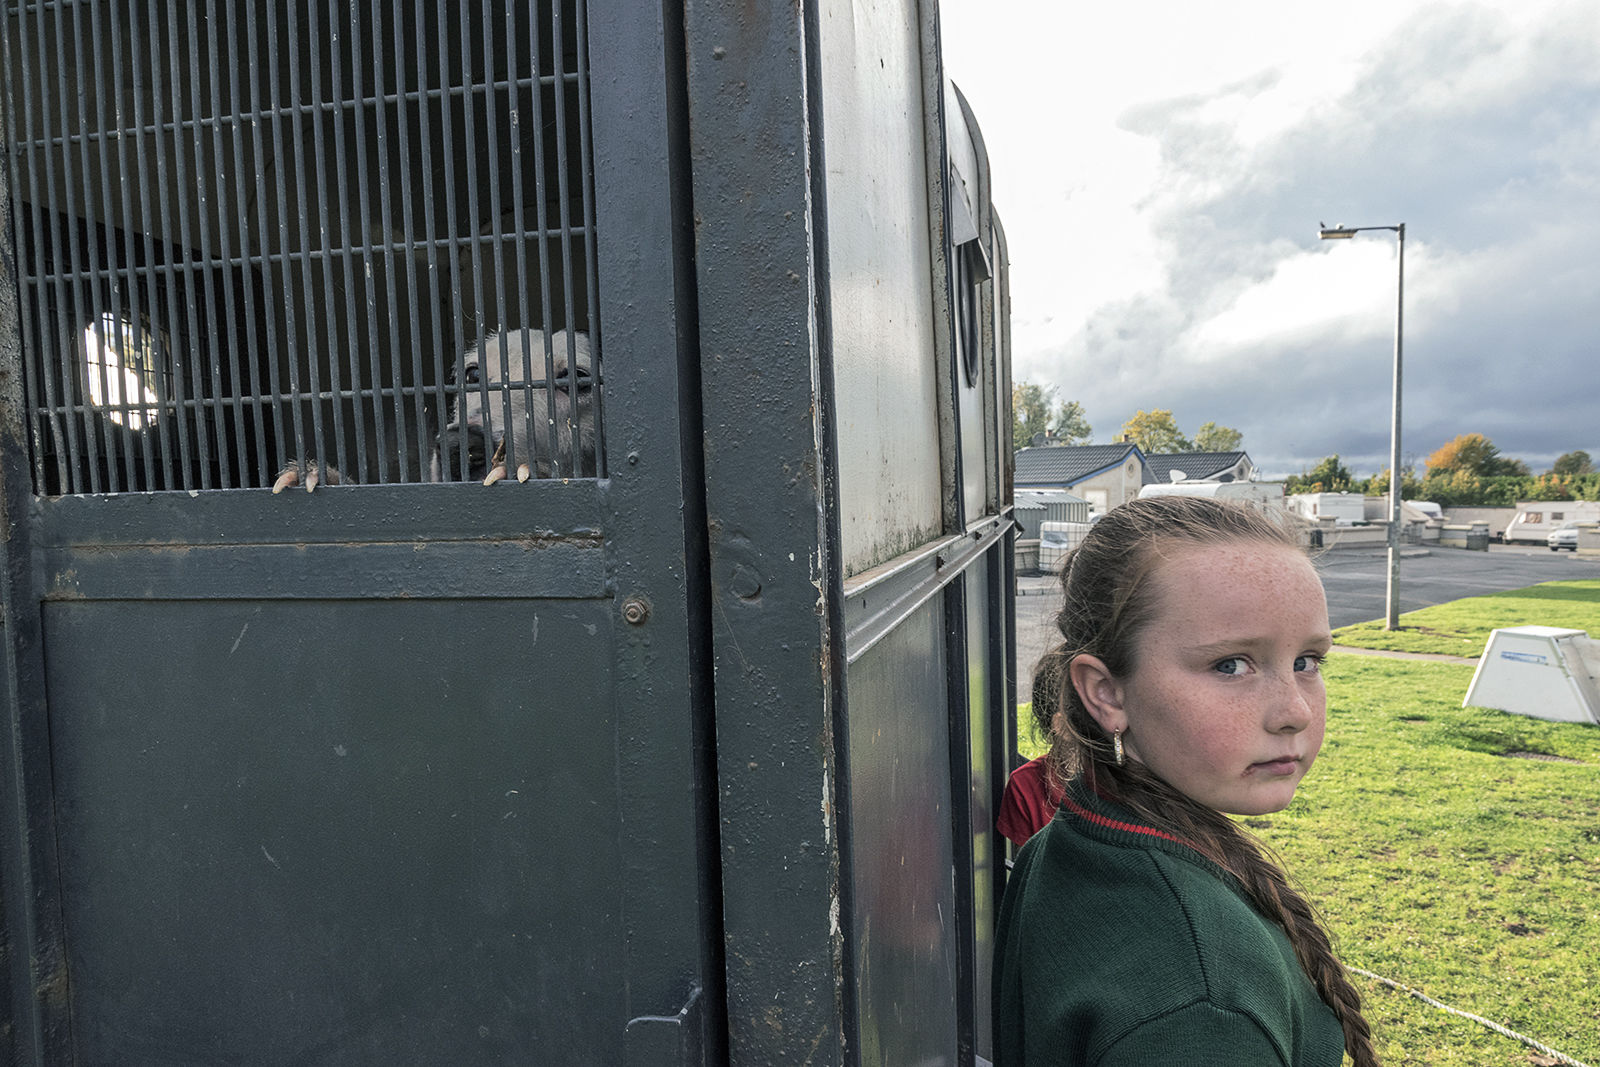 Claws, Offaly, Ireland 2018